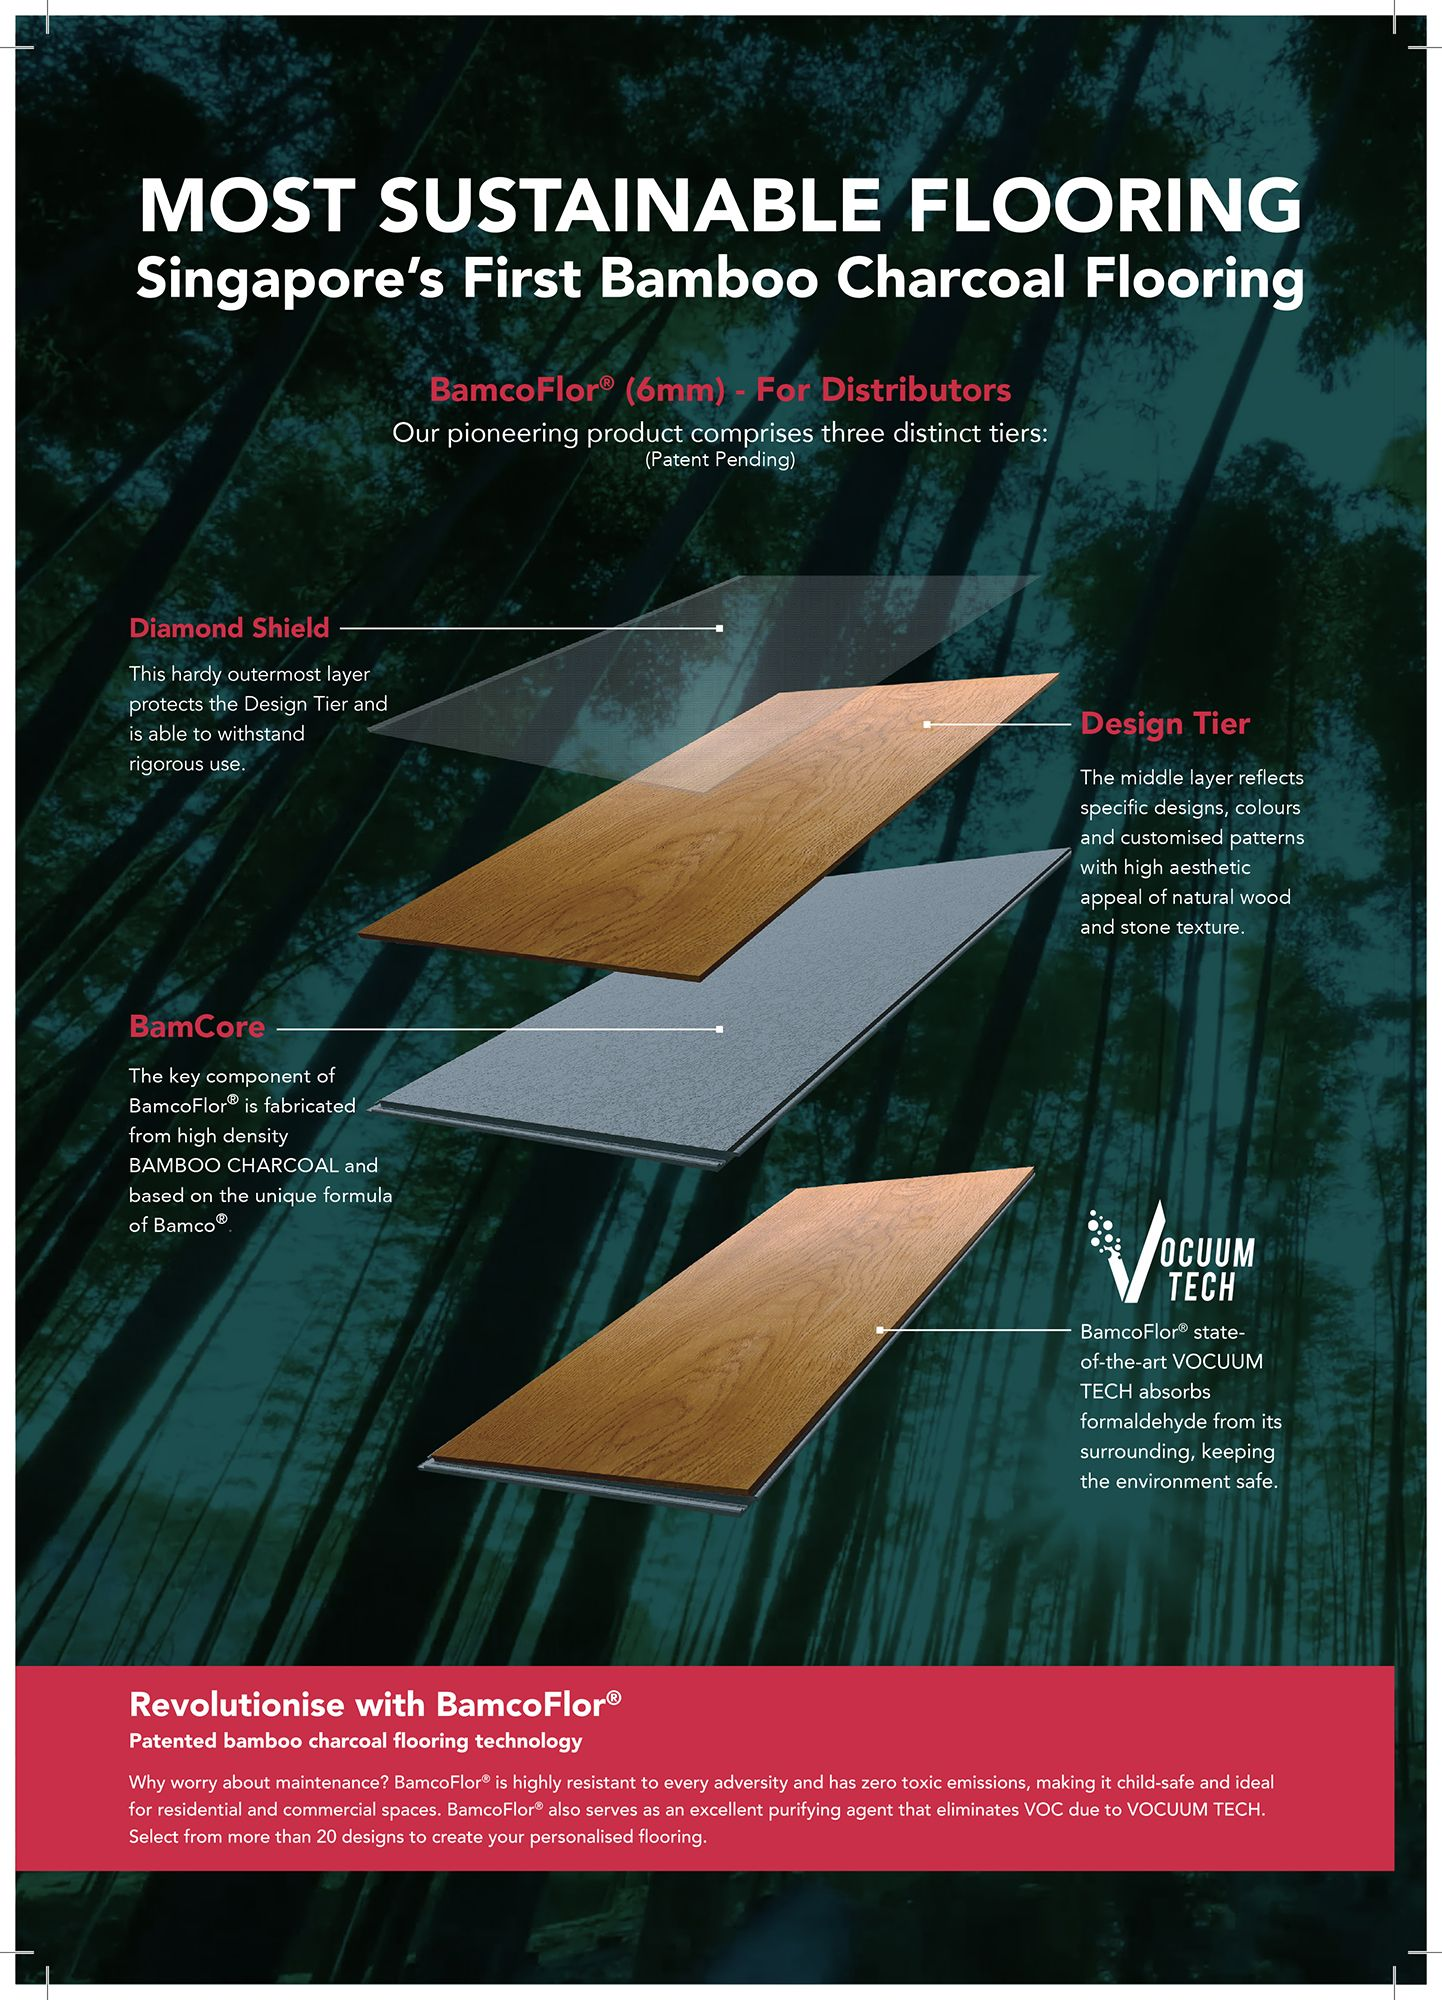 BamcoFlor® Most Sustainable Bamboo Charcoal Floor